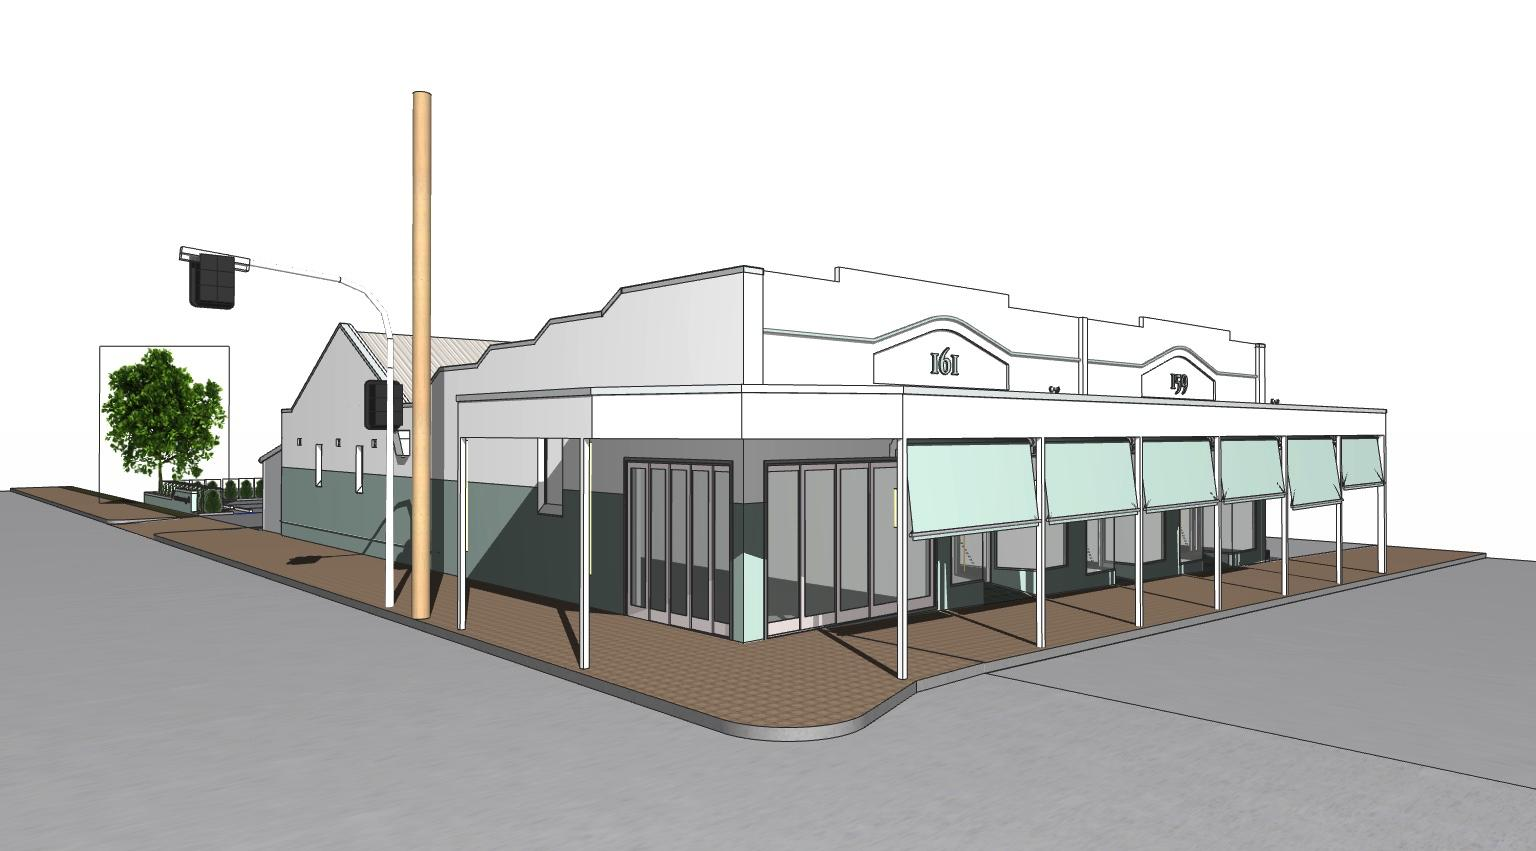 Racecourse Road, Ascot commercial retail for lease - Brisbane commercial real estate